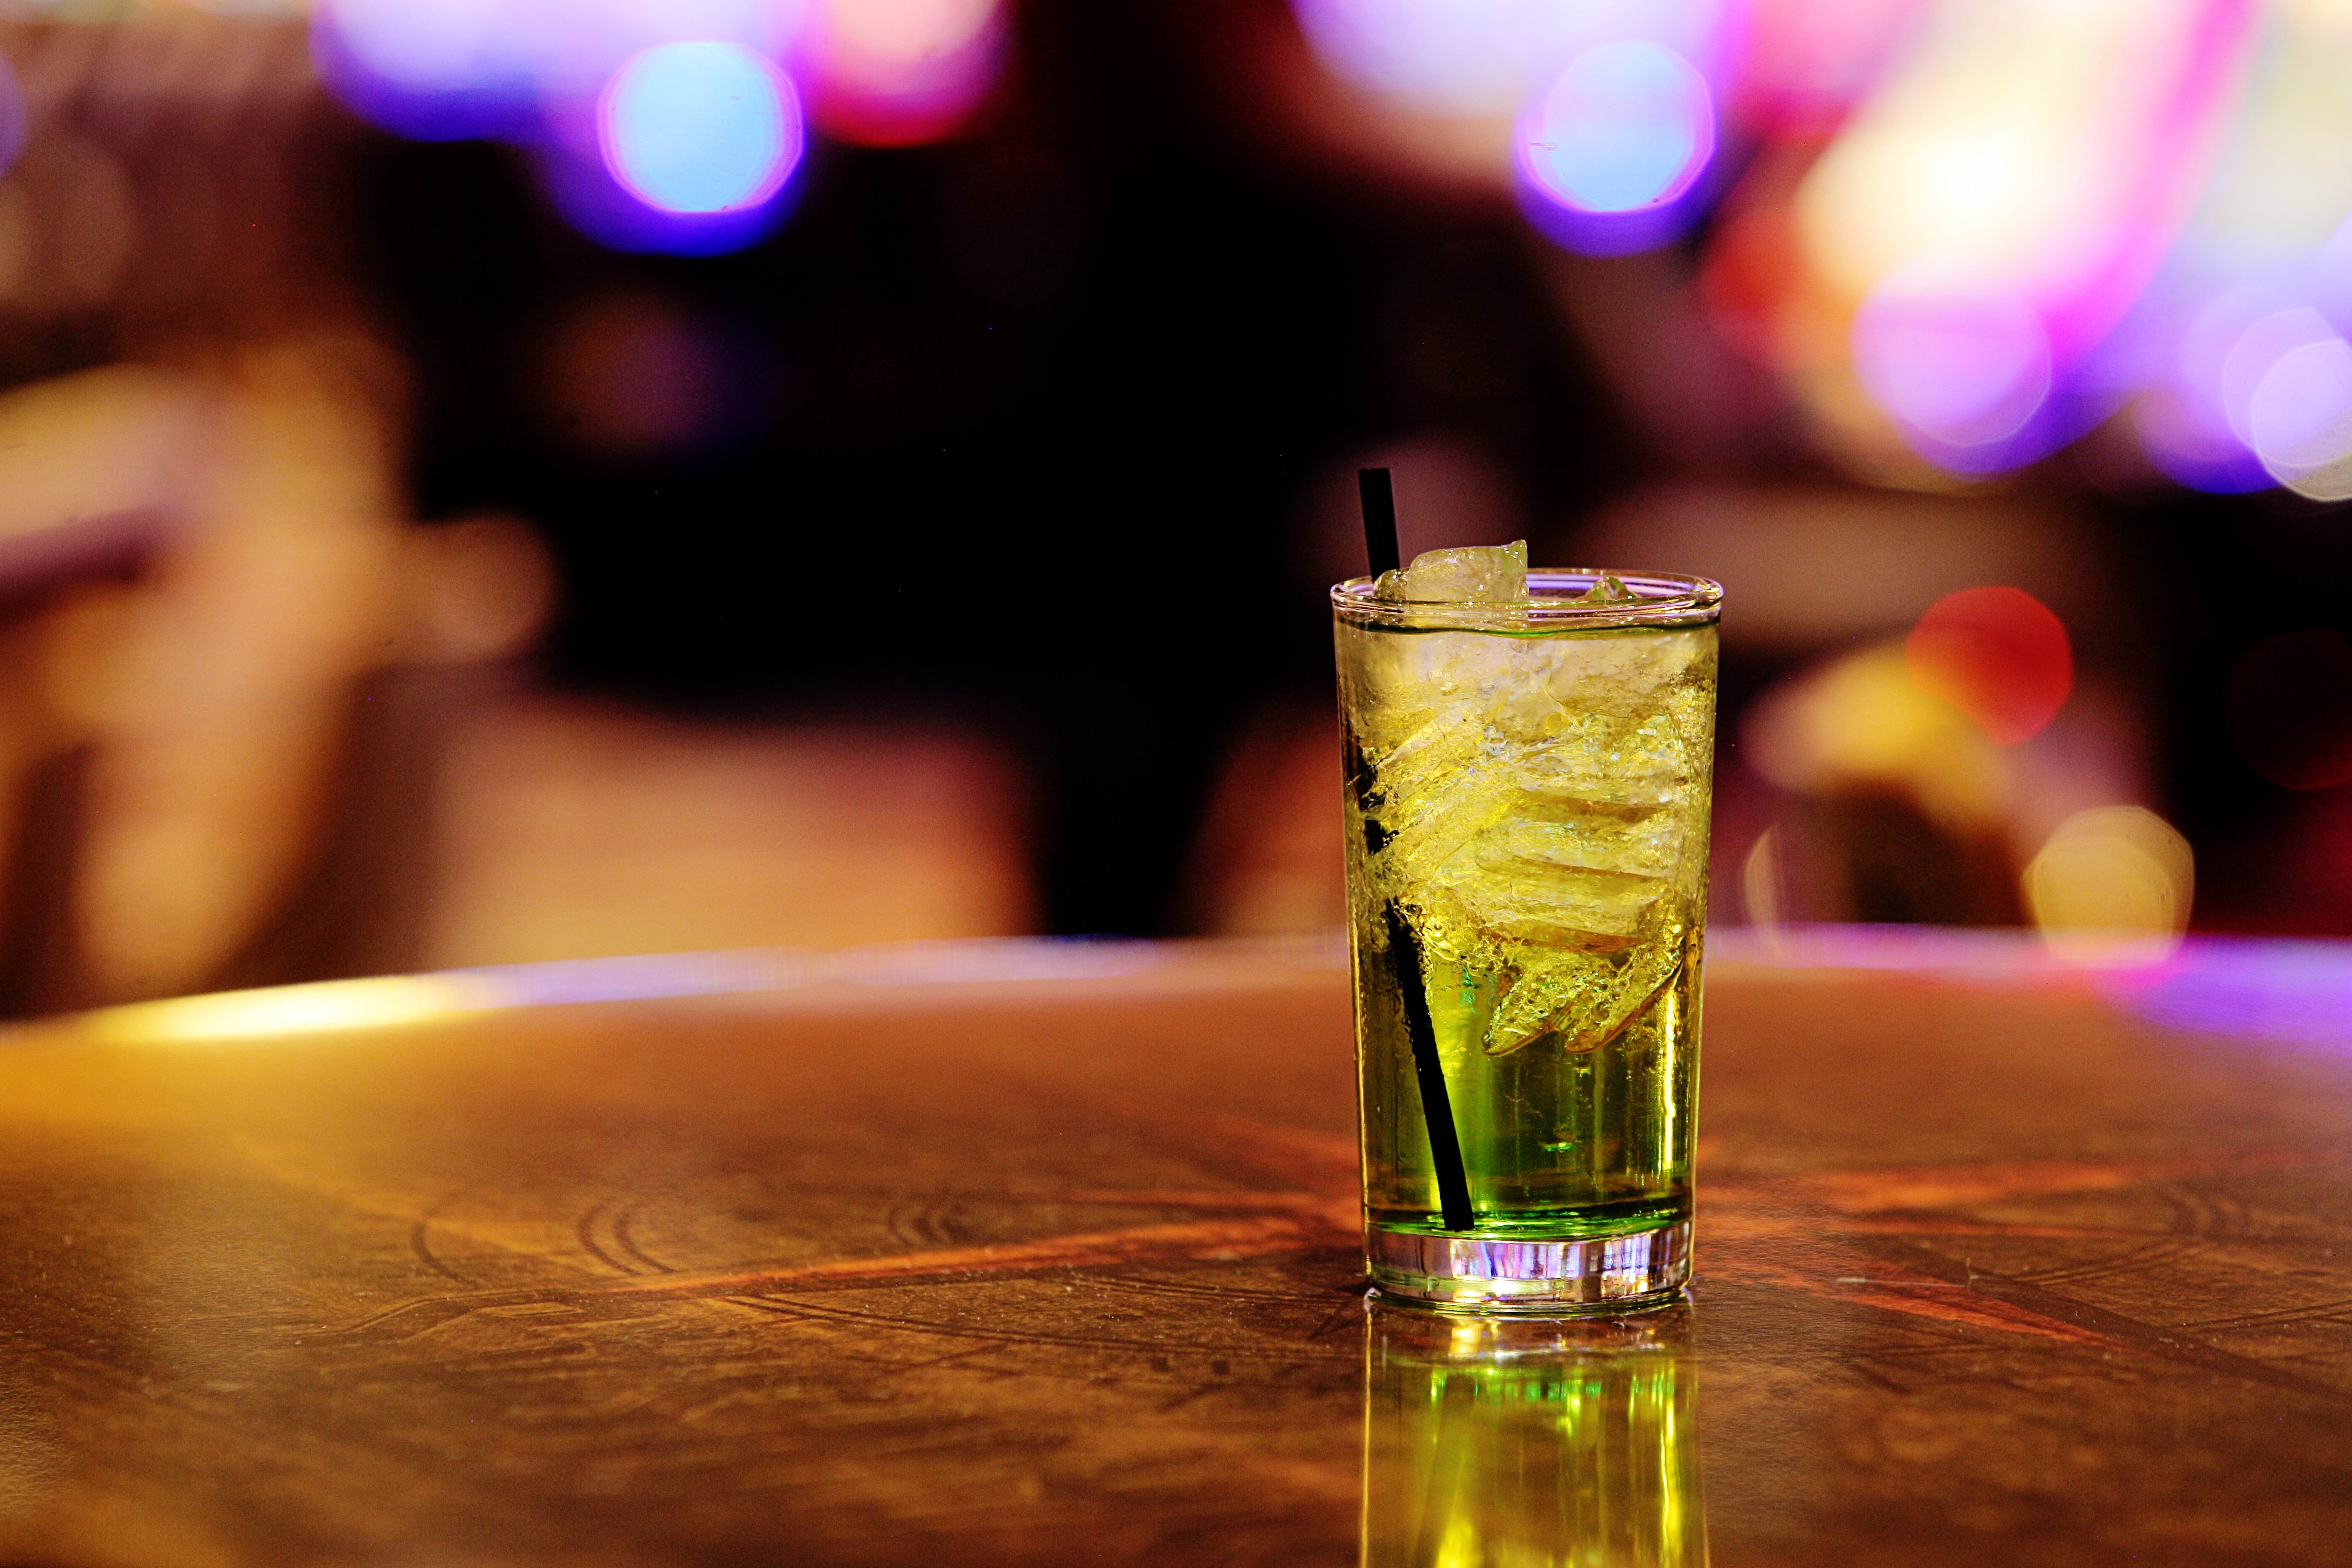 green drink on a table